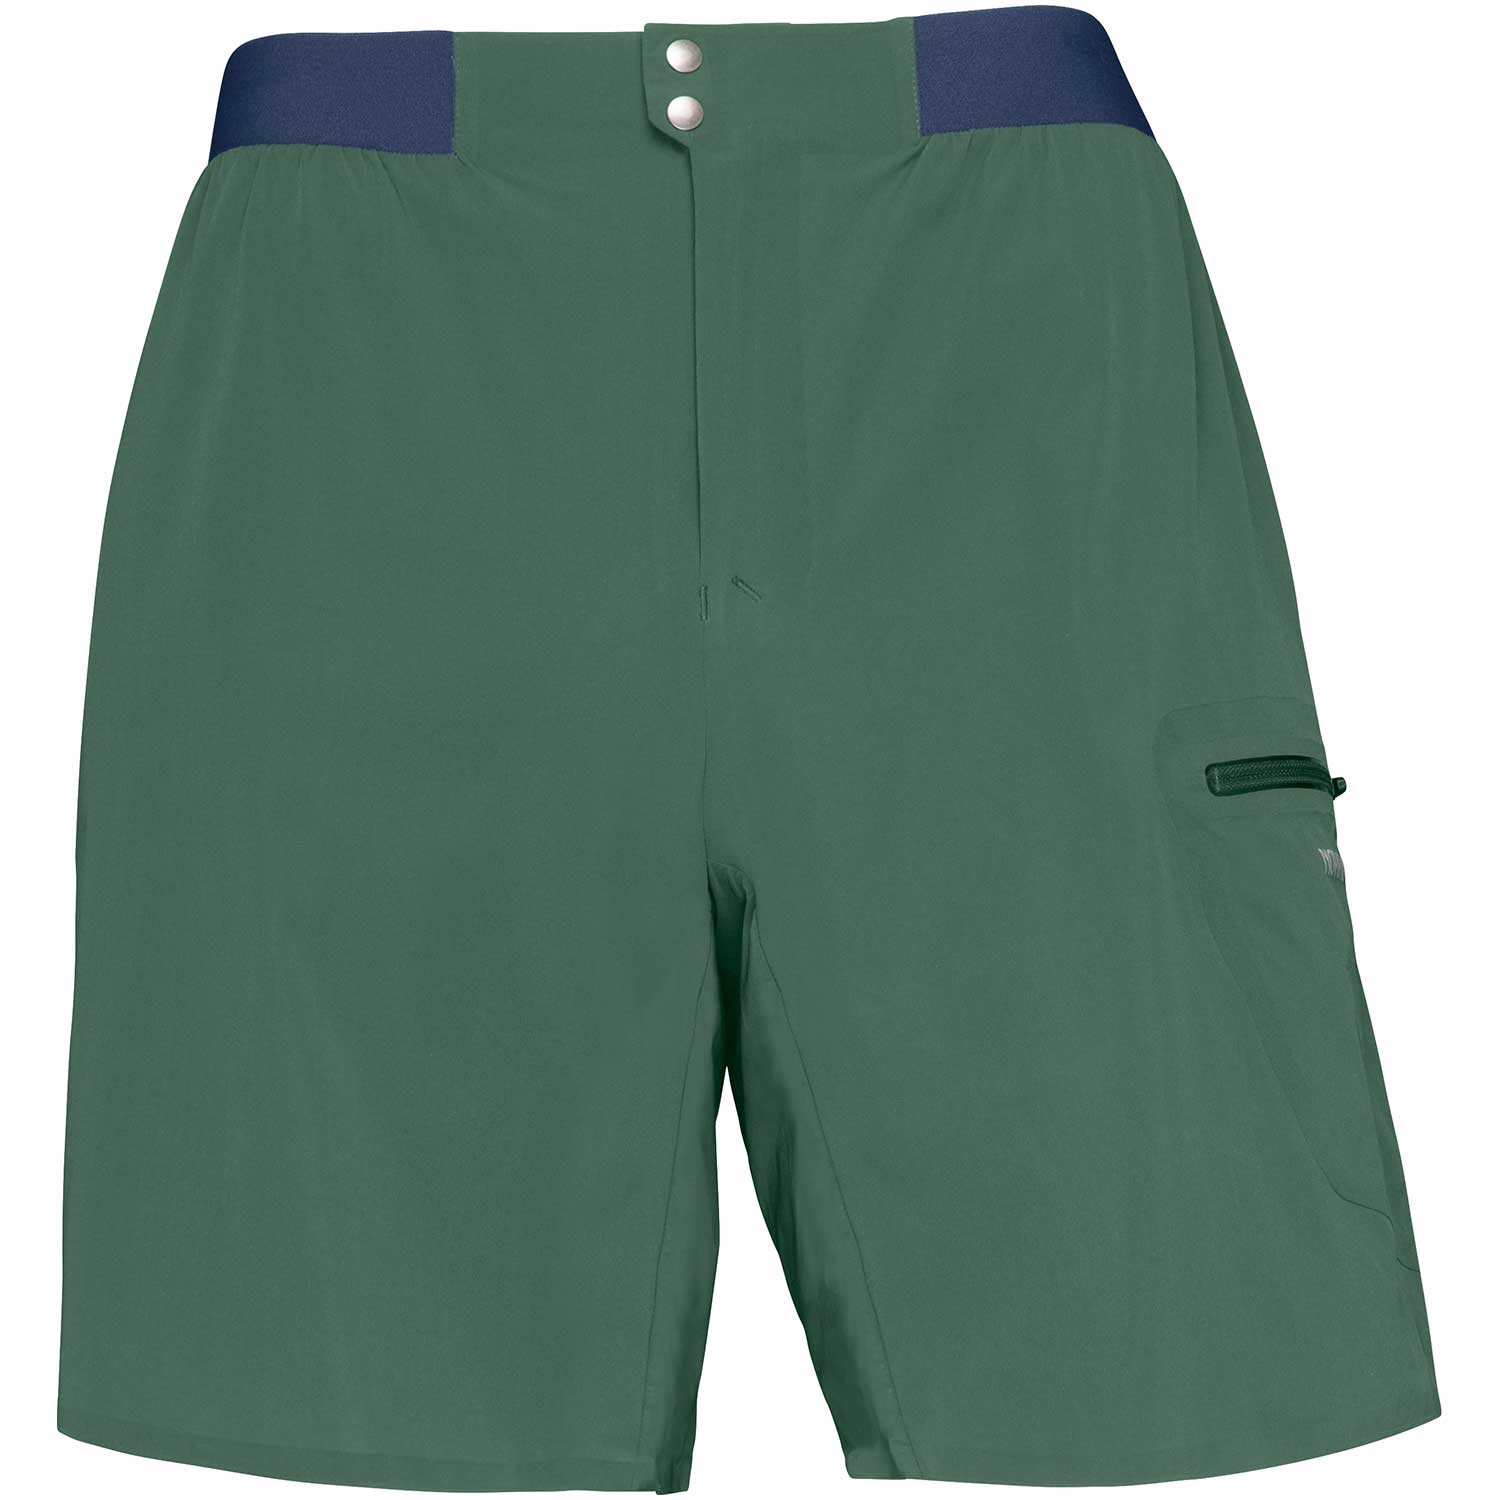 bitihorn trail running Shorts (M)